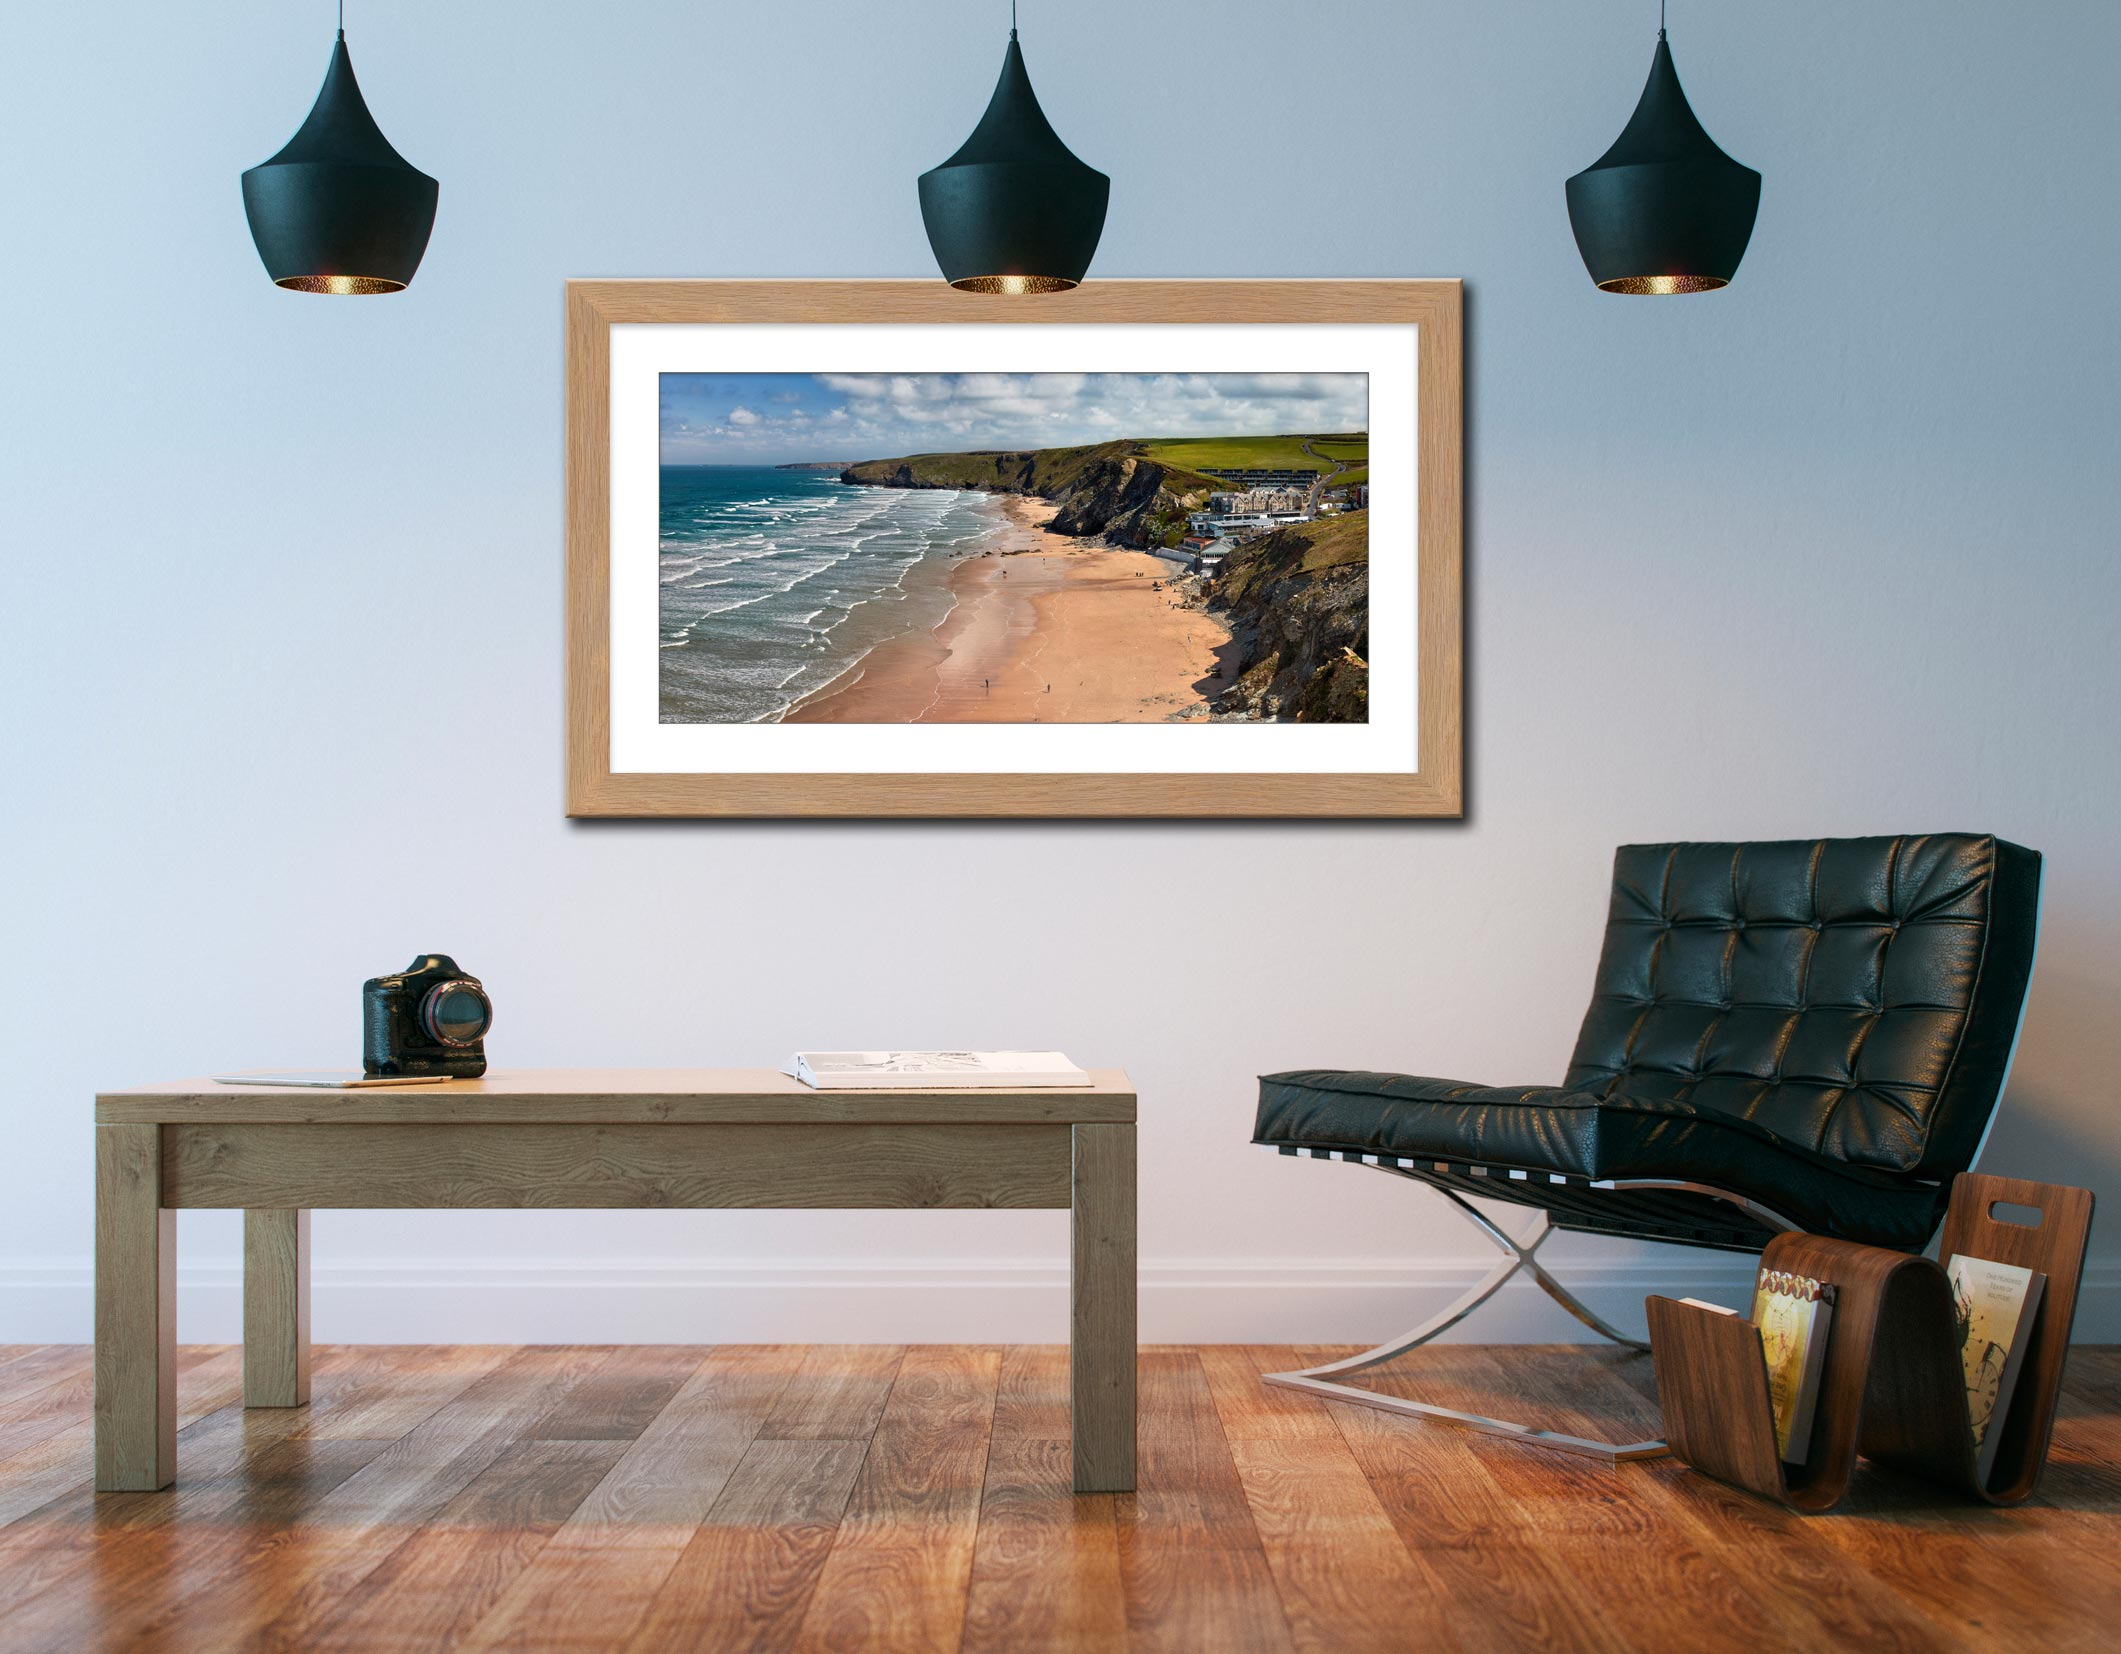 Watergate Bay Beach - Framed Print with Mount on Wall